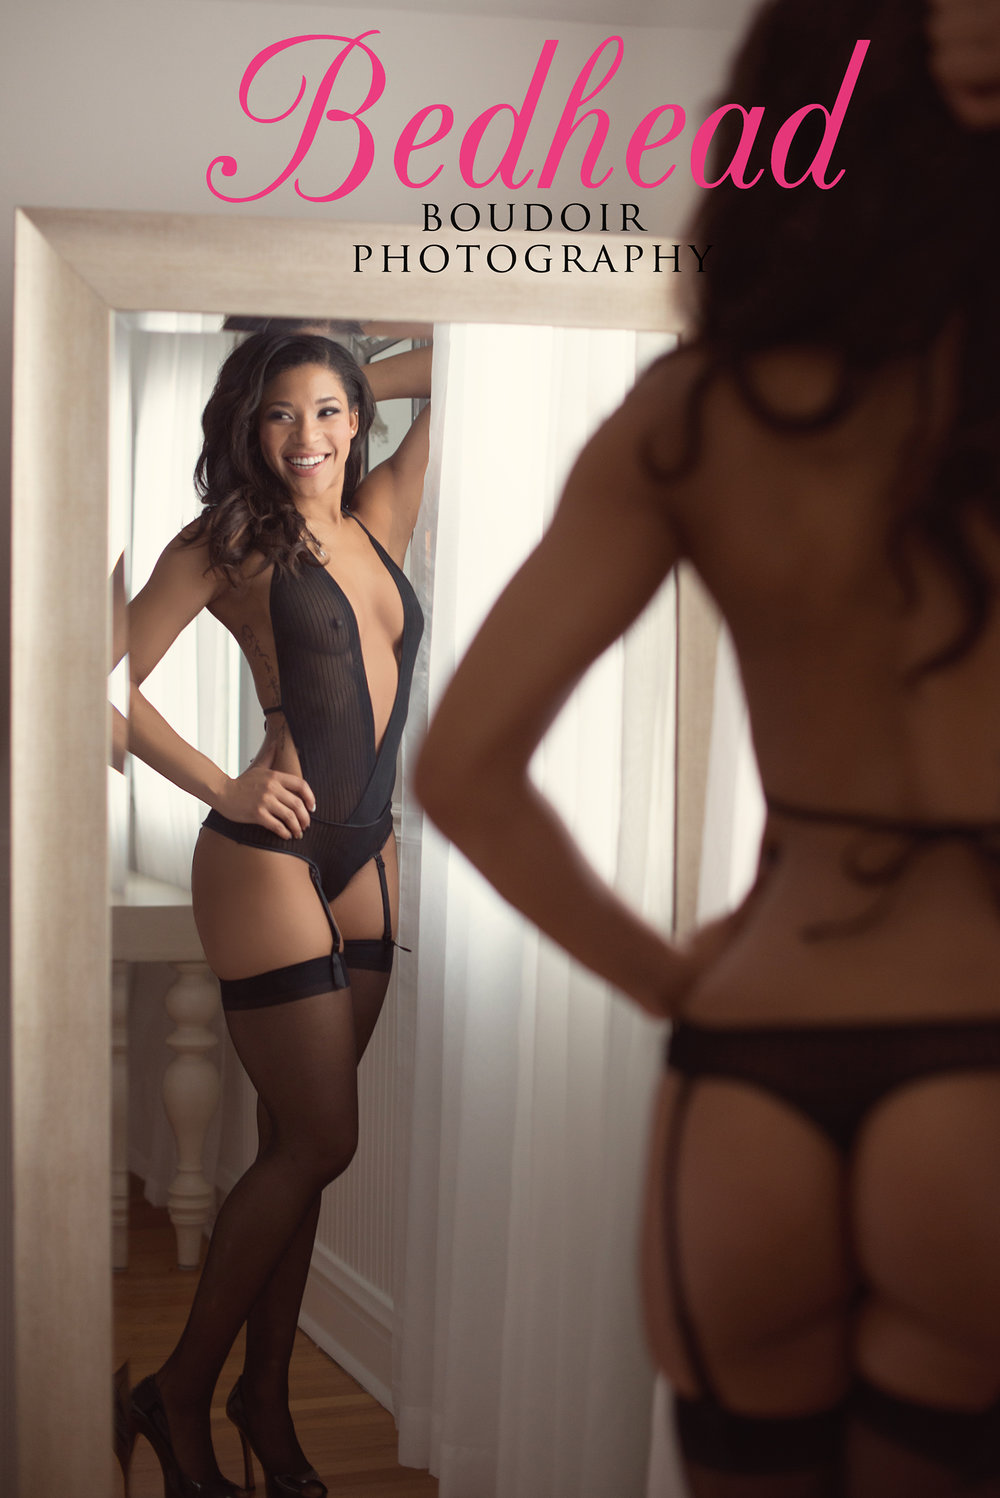 Boudoir_Photography_Chicago_Bedhead_57.jpg